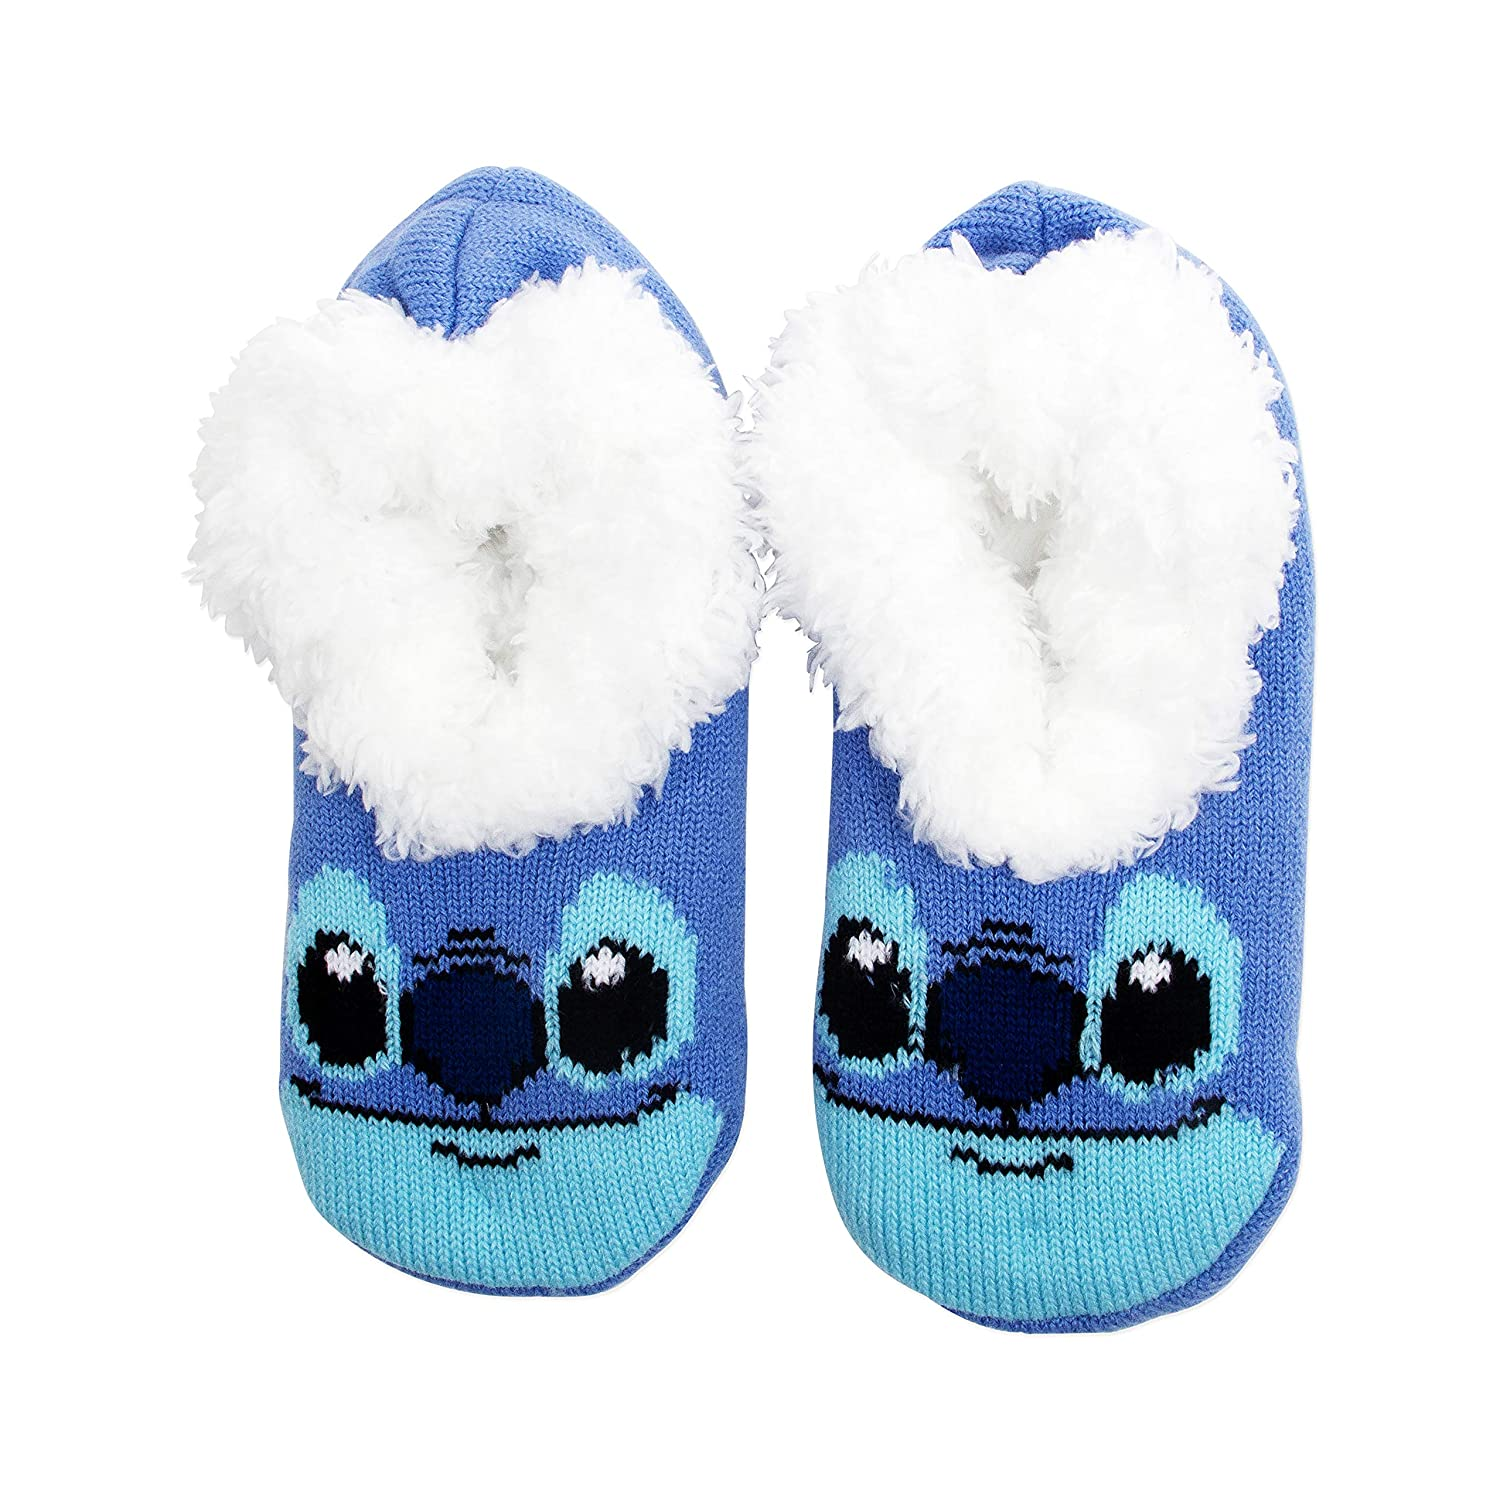 Lilo and Stitch Plush Slipper Socks with Non Slip Grips One Size Fits Most